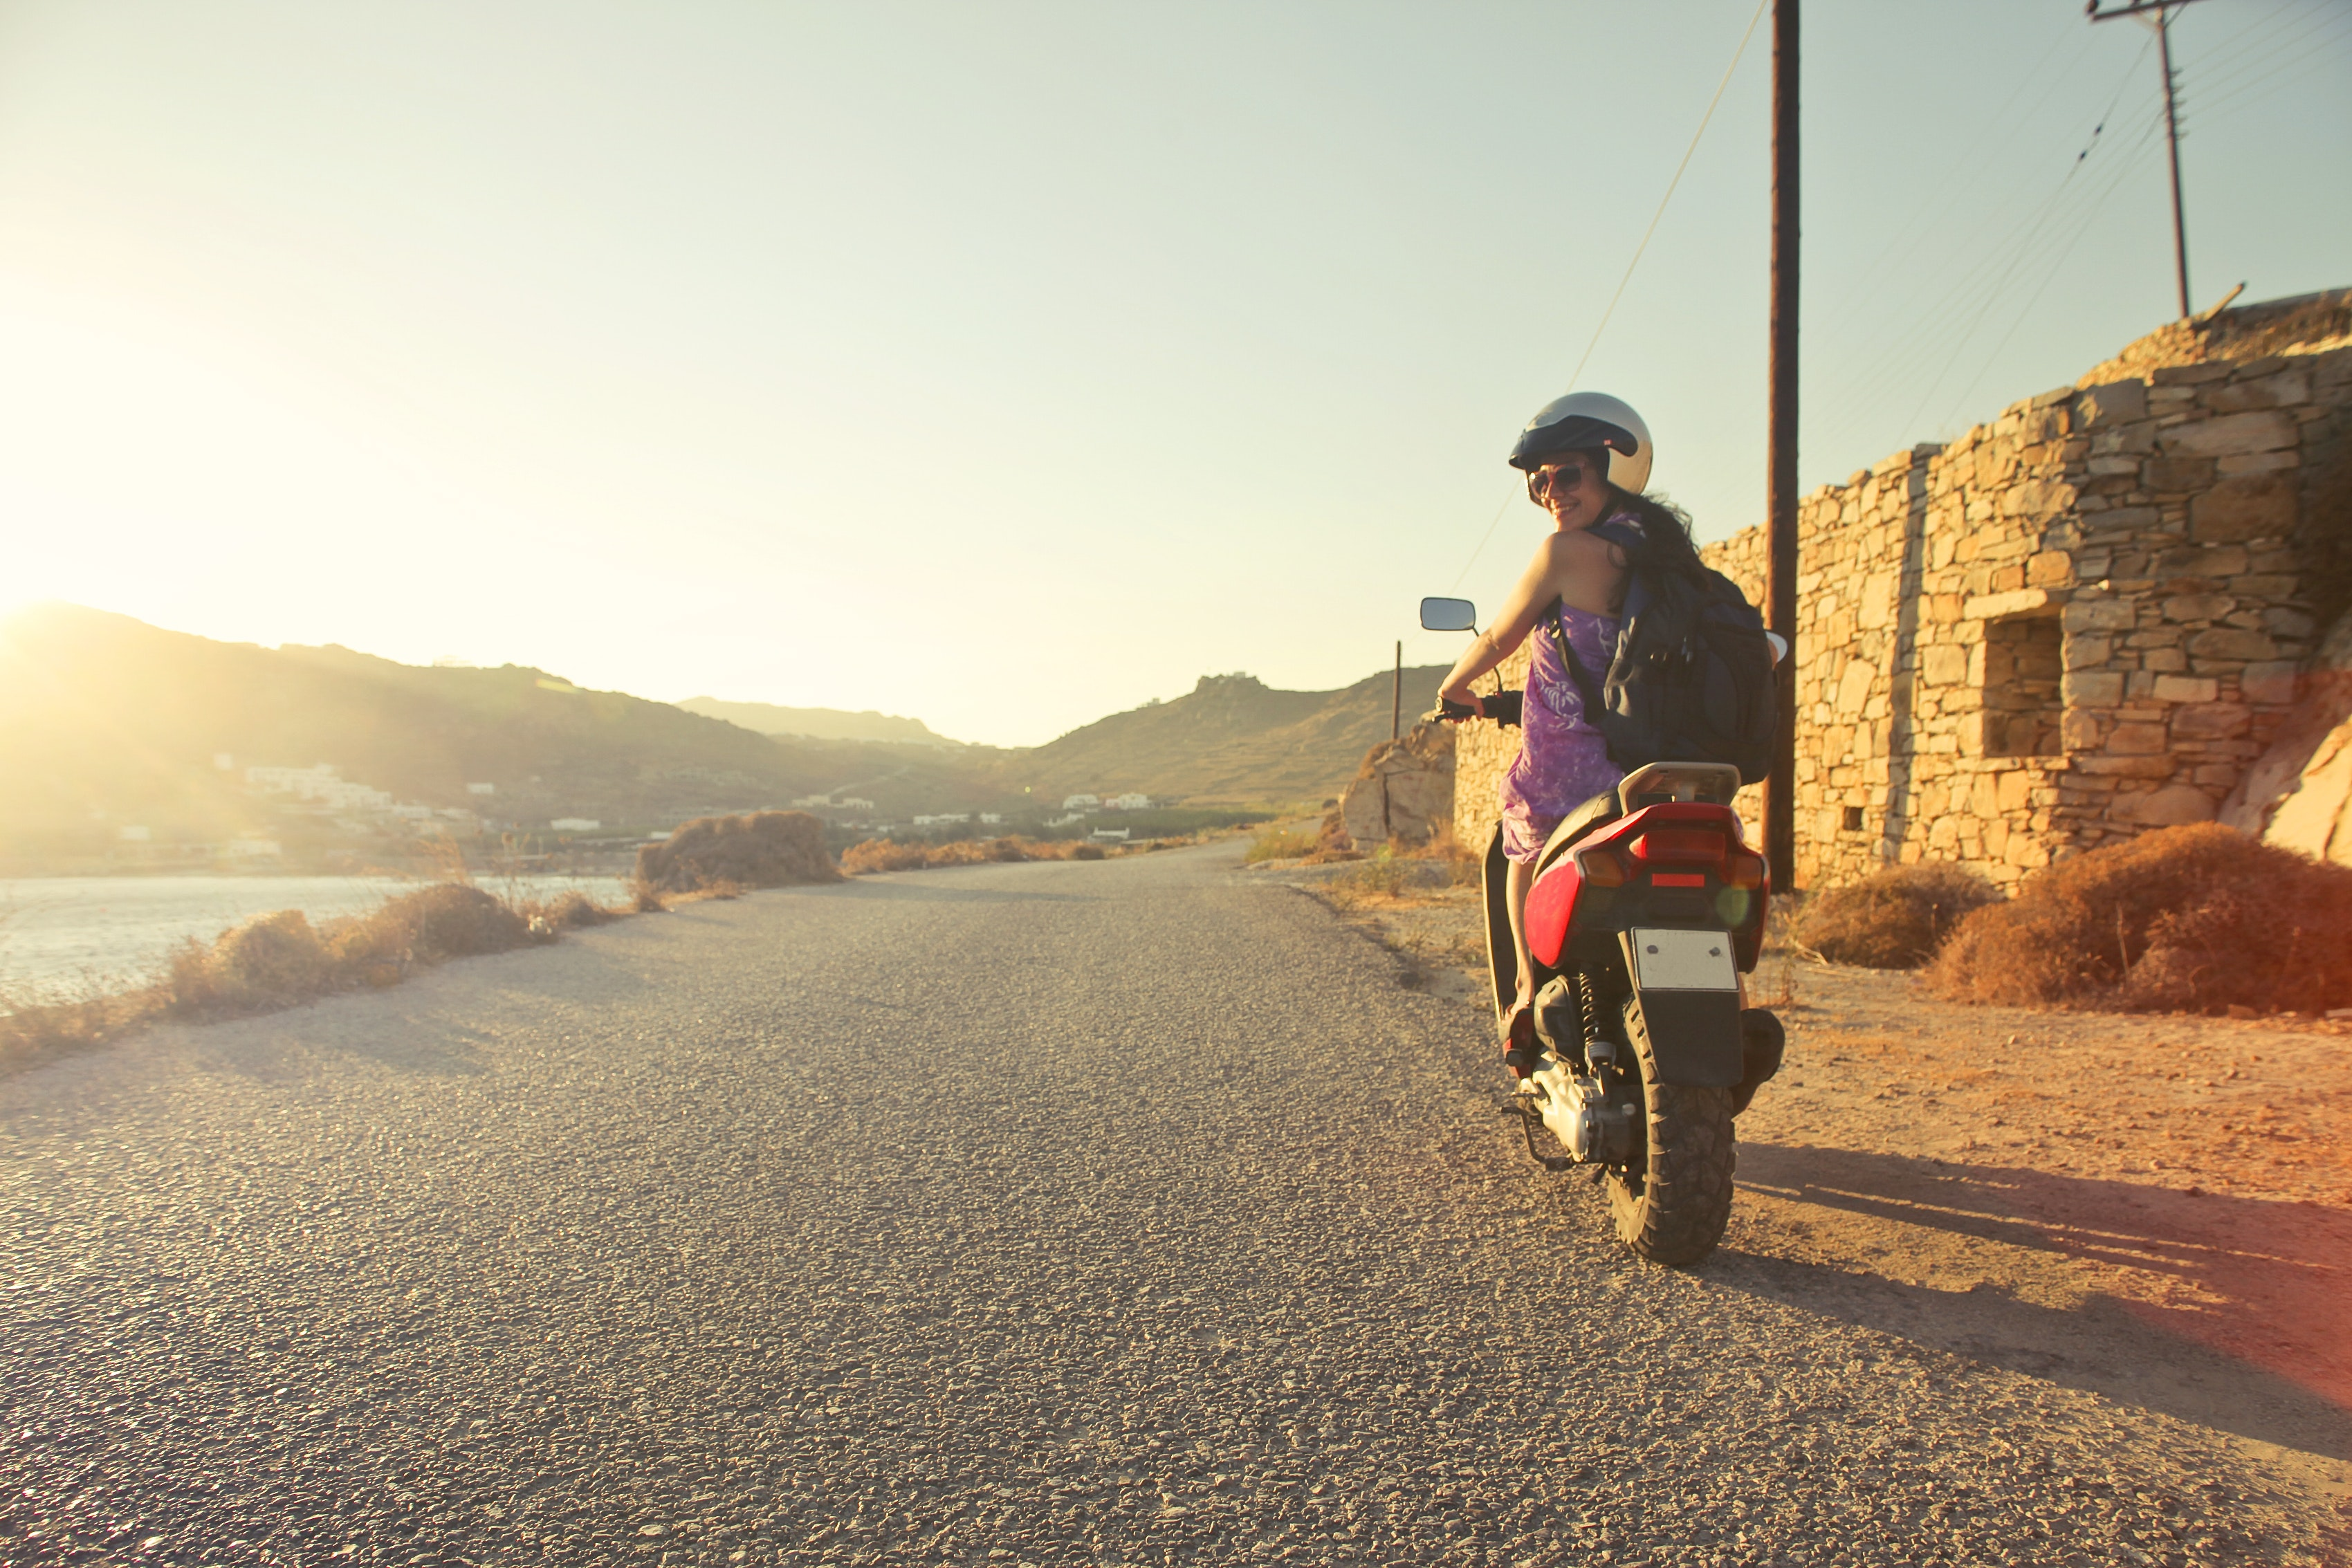 Woman Riding Motor Scooter Travelling on Asphalt Road during Sunrise, Asphalt, Road, Wheels, Vehicle, HQ Photo